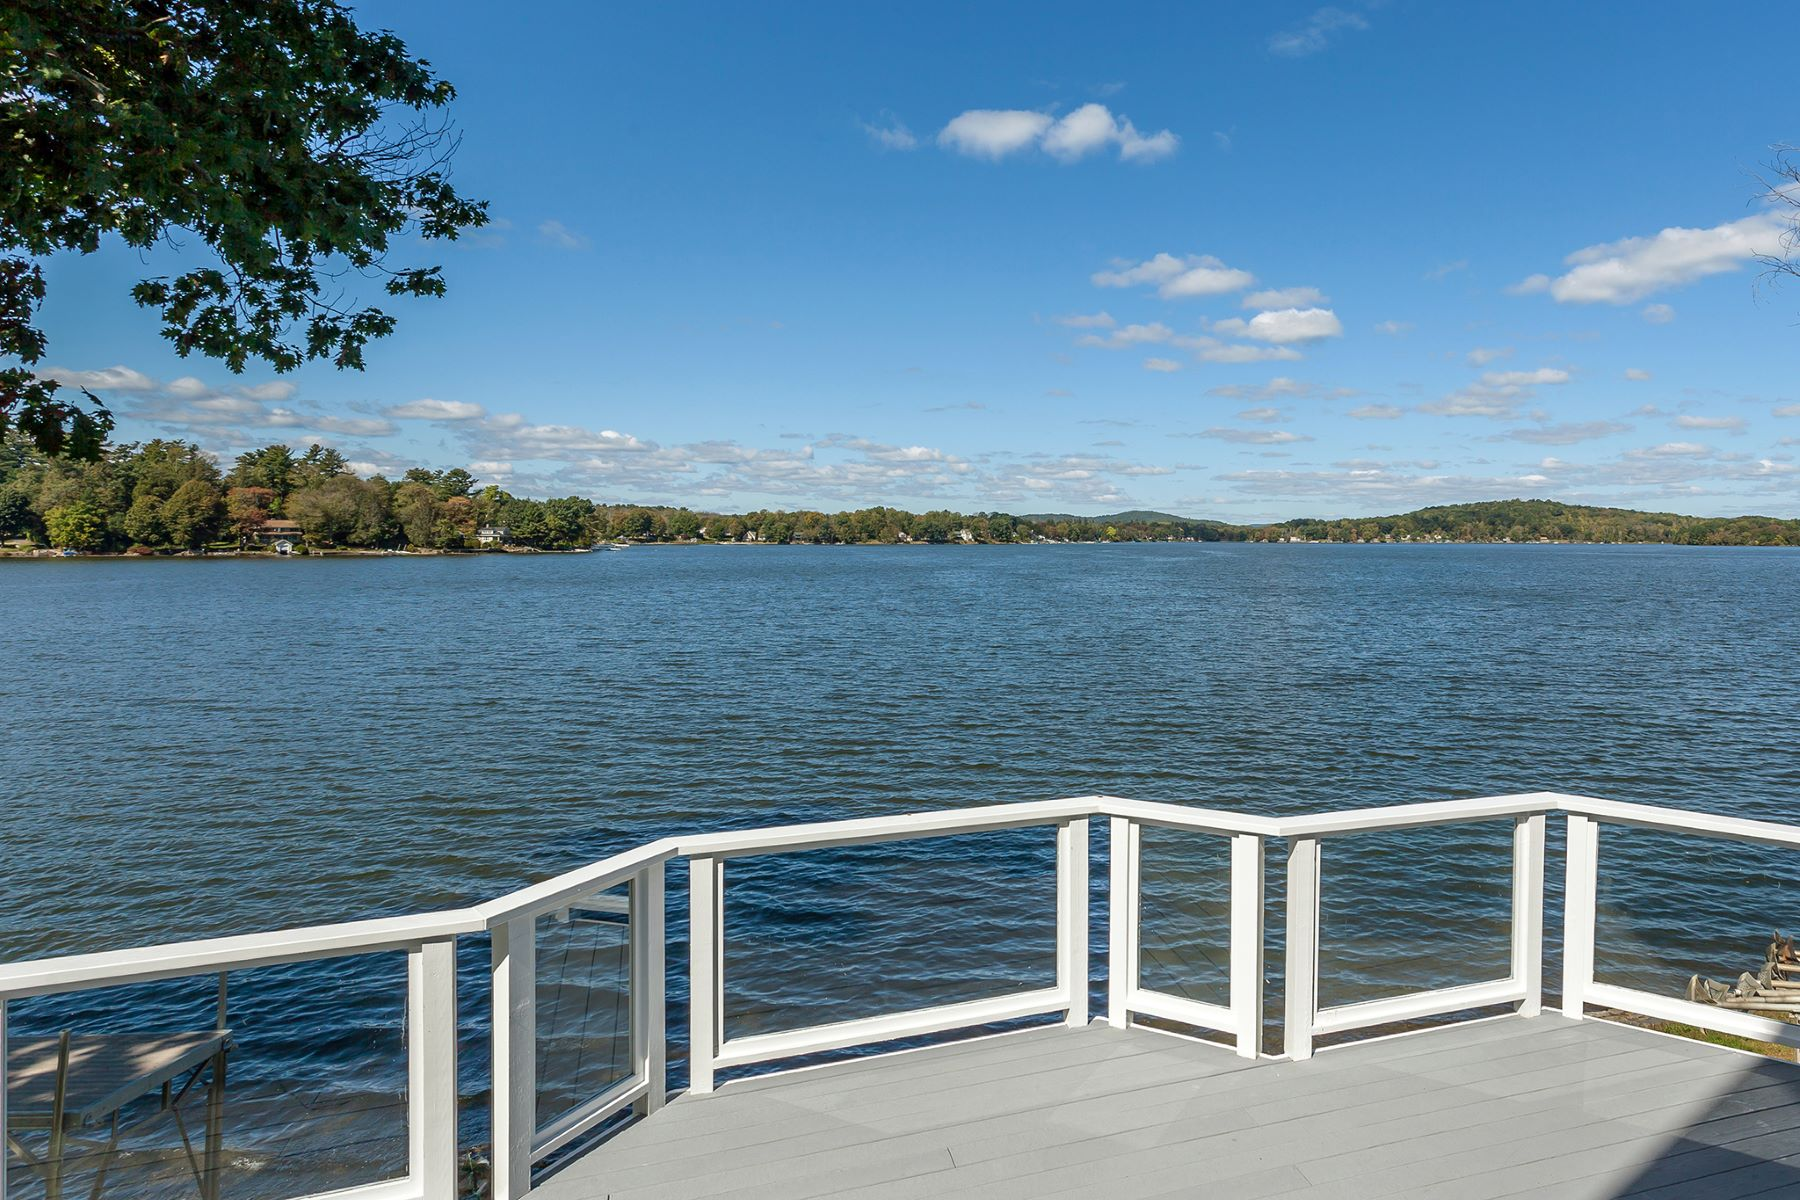 Single Family Home for Sale at Fabulous Bantam Lake Waterfront Home 219 East Shore Rd, Morris, Connecticut, 06763 United States